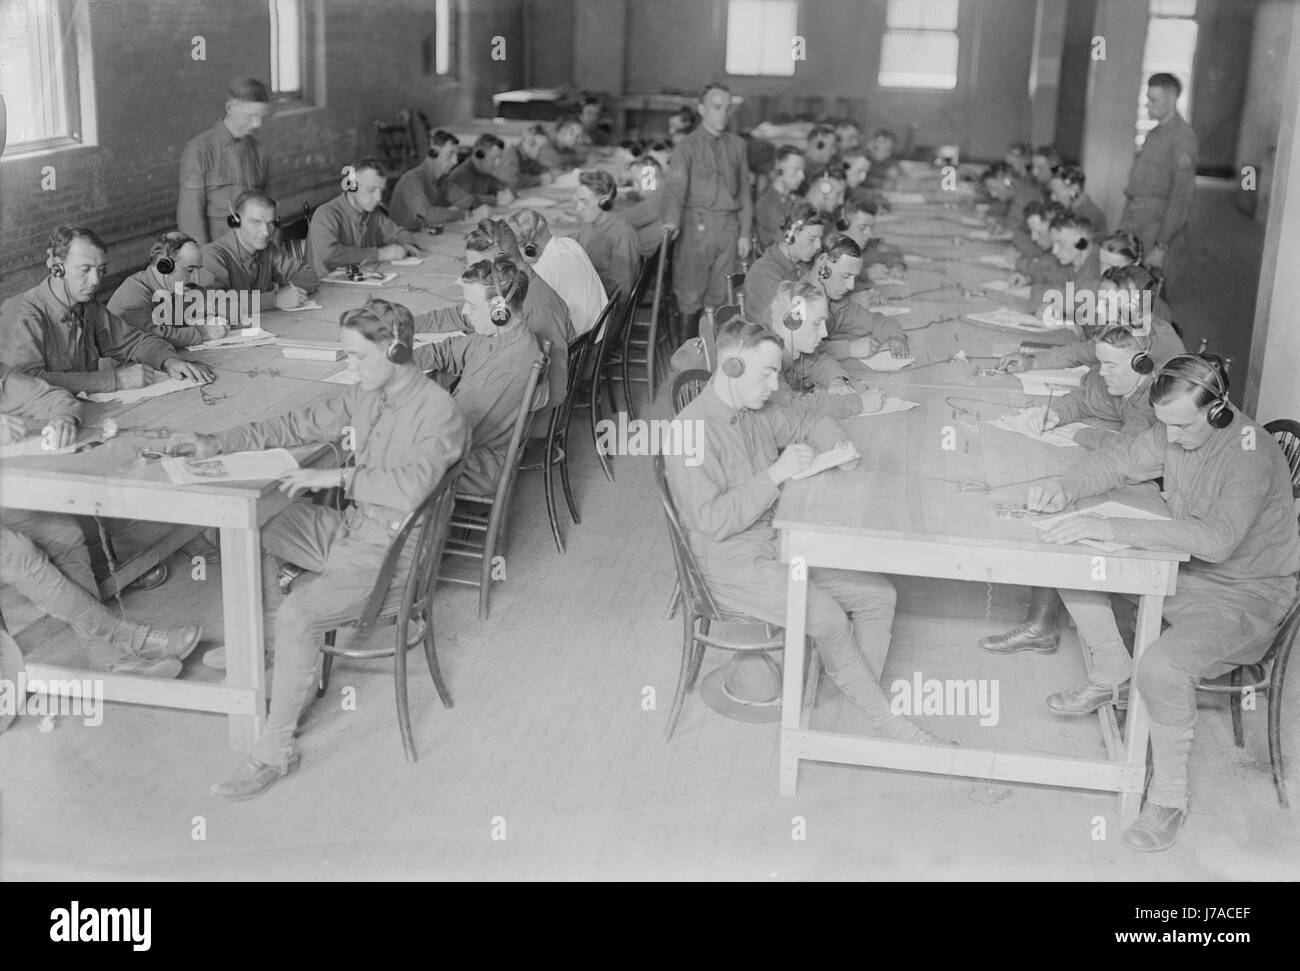 Members of the U.S. Army Signal Corps in telegraph training during World War I. - Stock Image